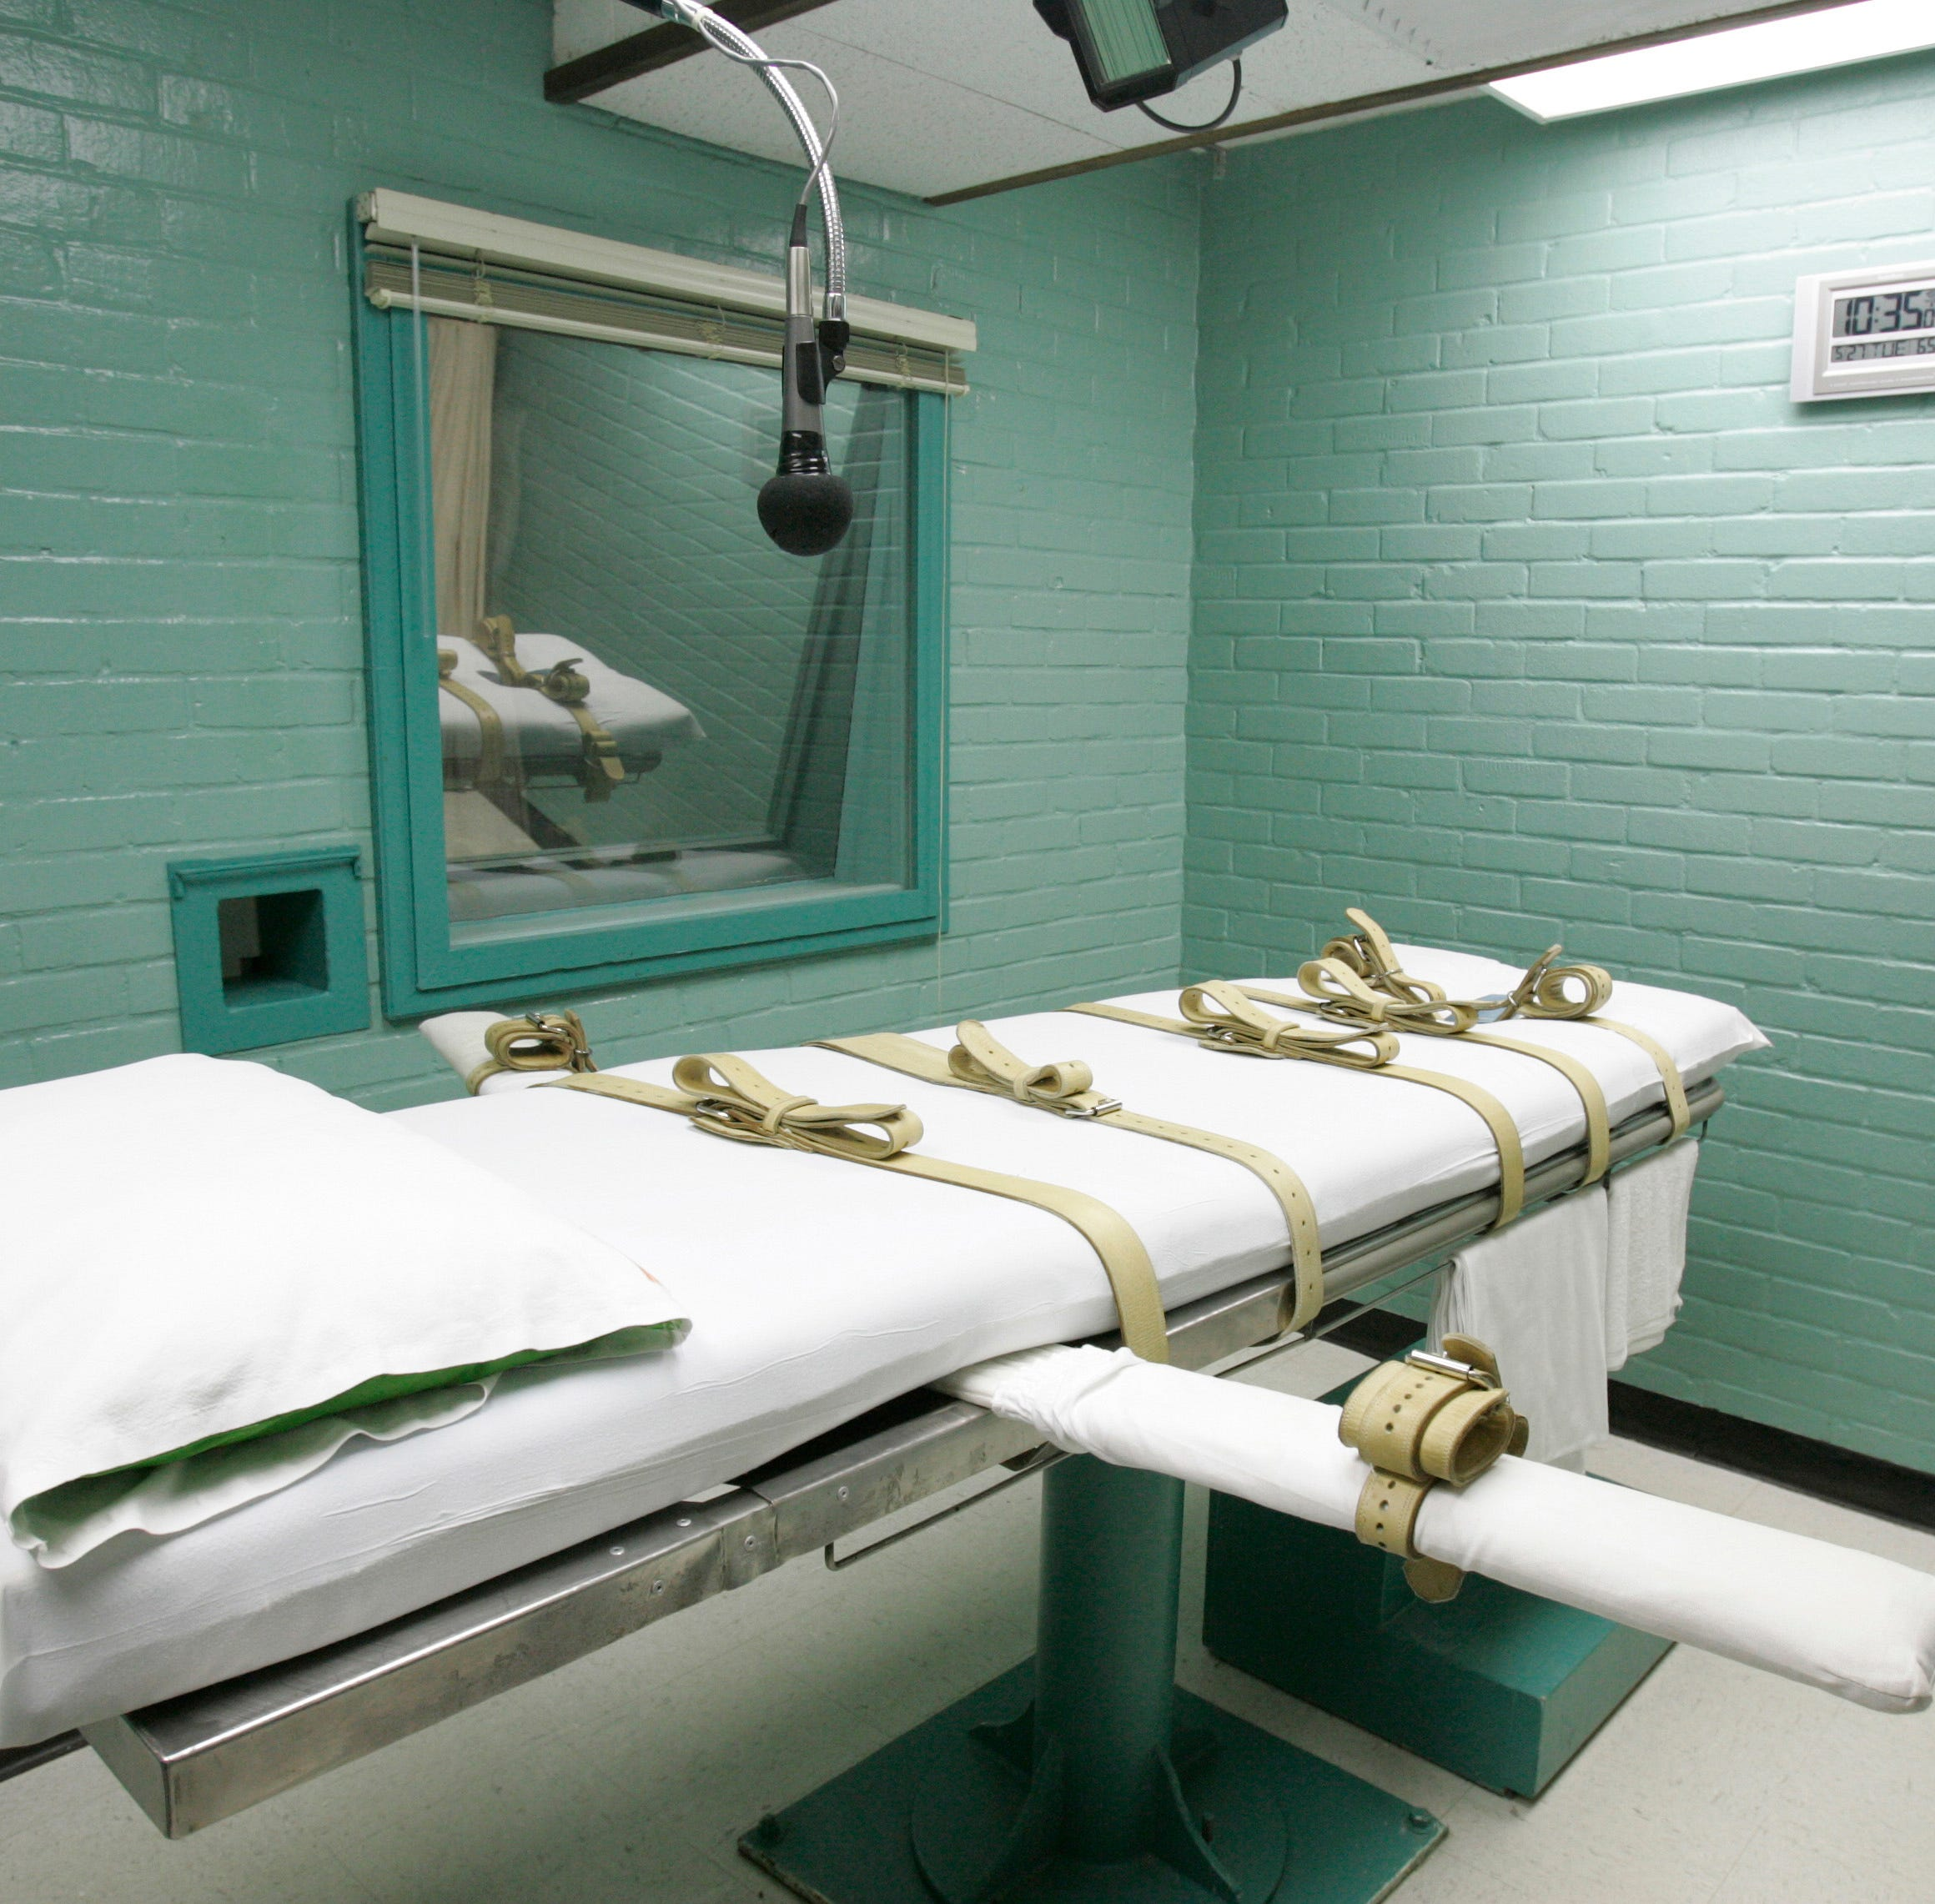 Senate panel OKs bill to abolish La.'s death penalty